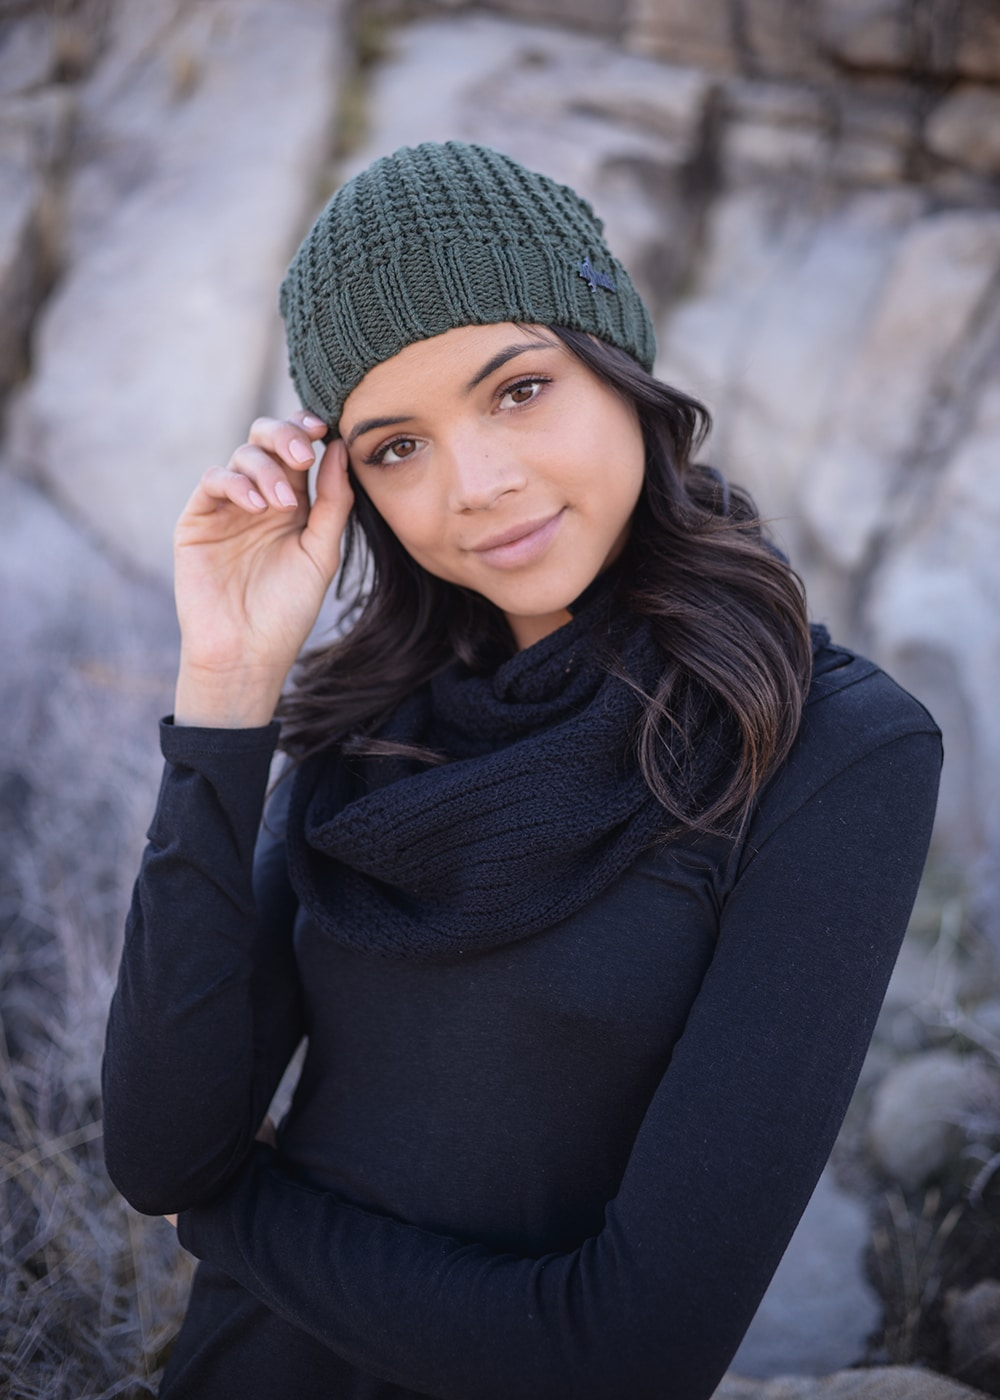 Hemp Knit Jasper Beanie in Green by Nomads Hemp Wear